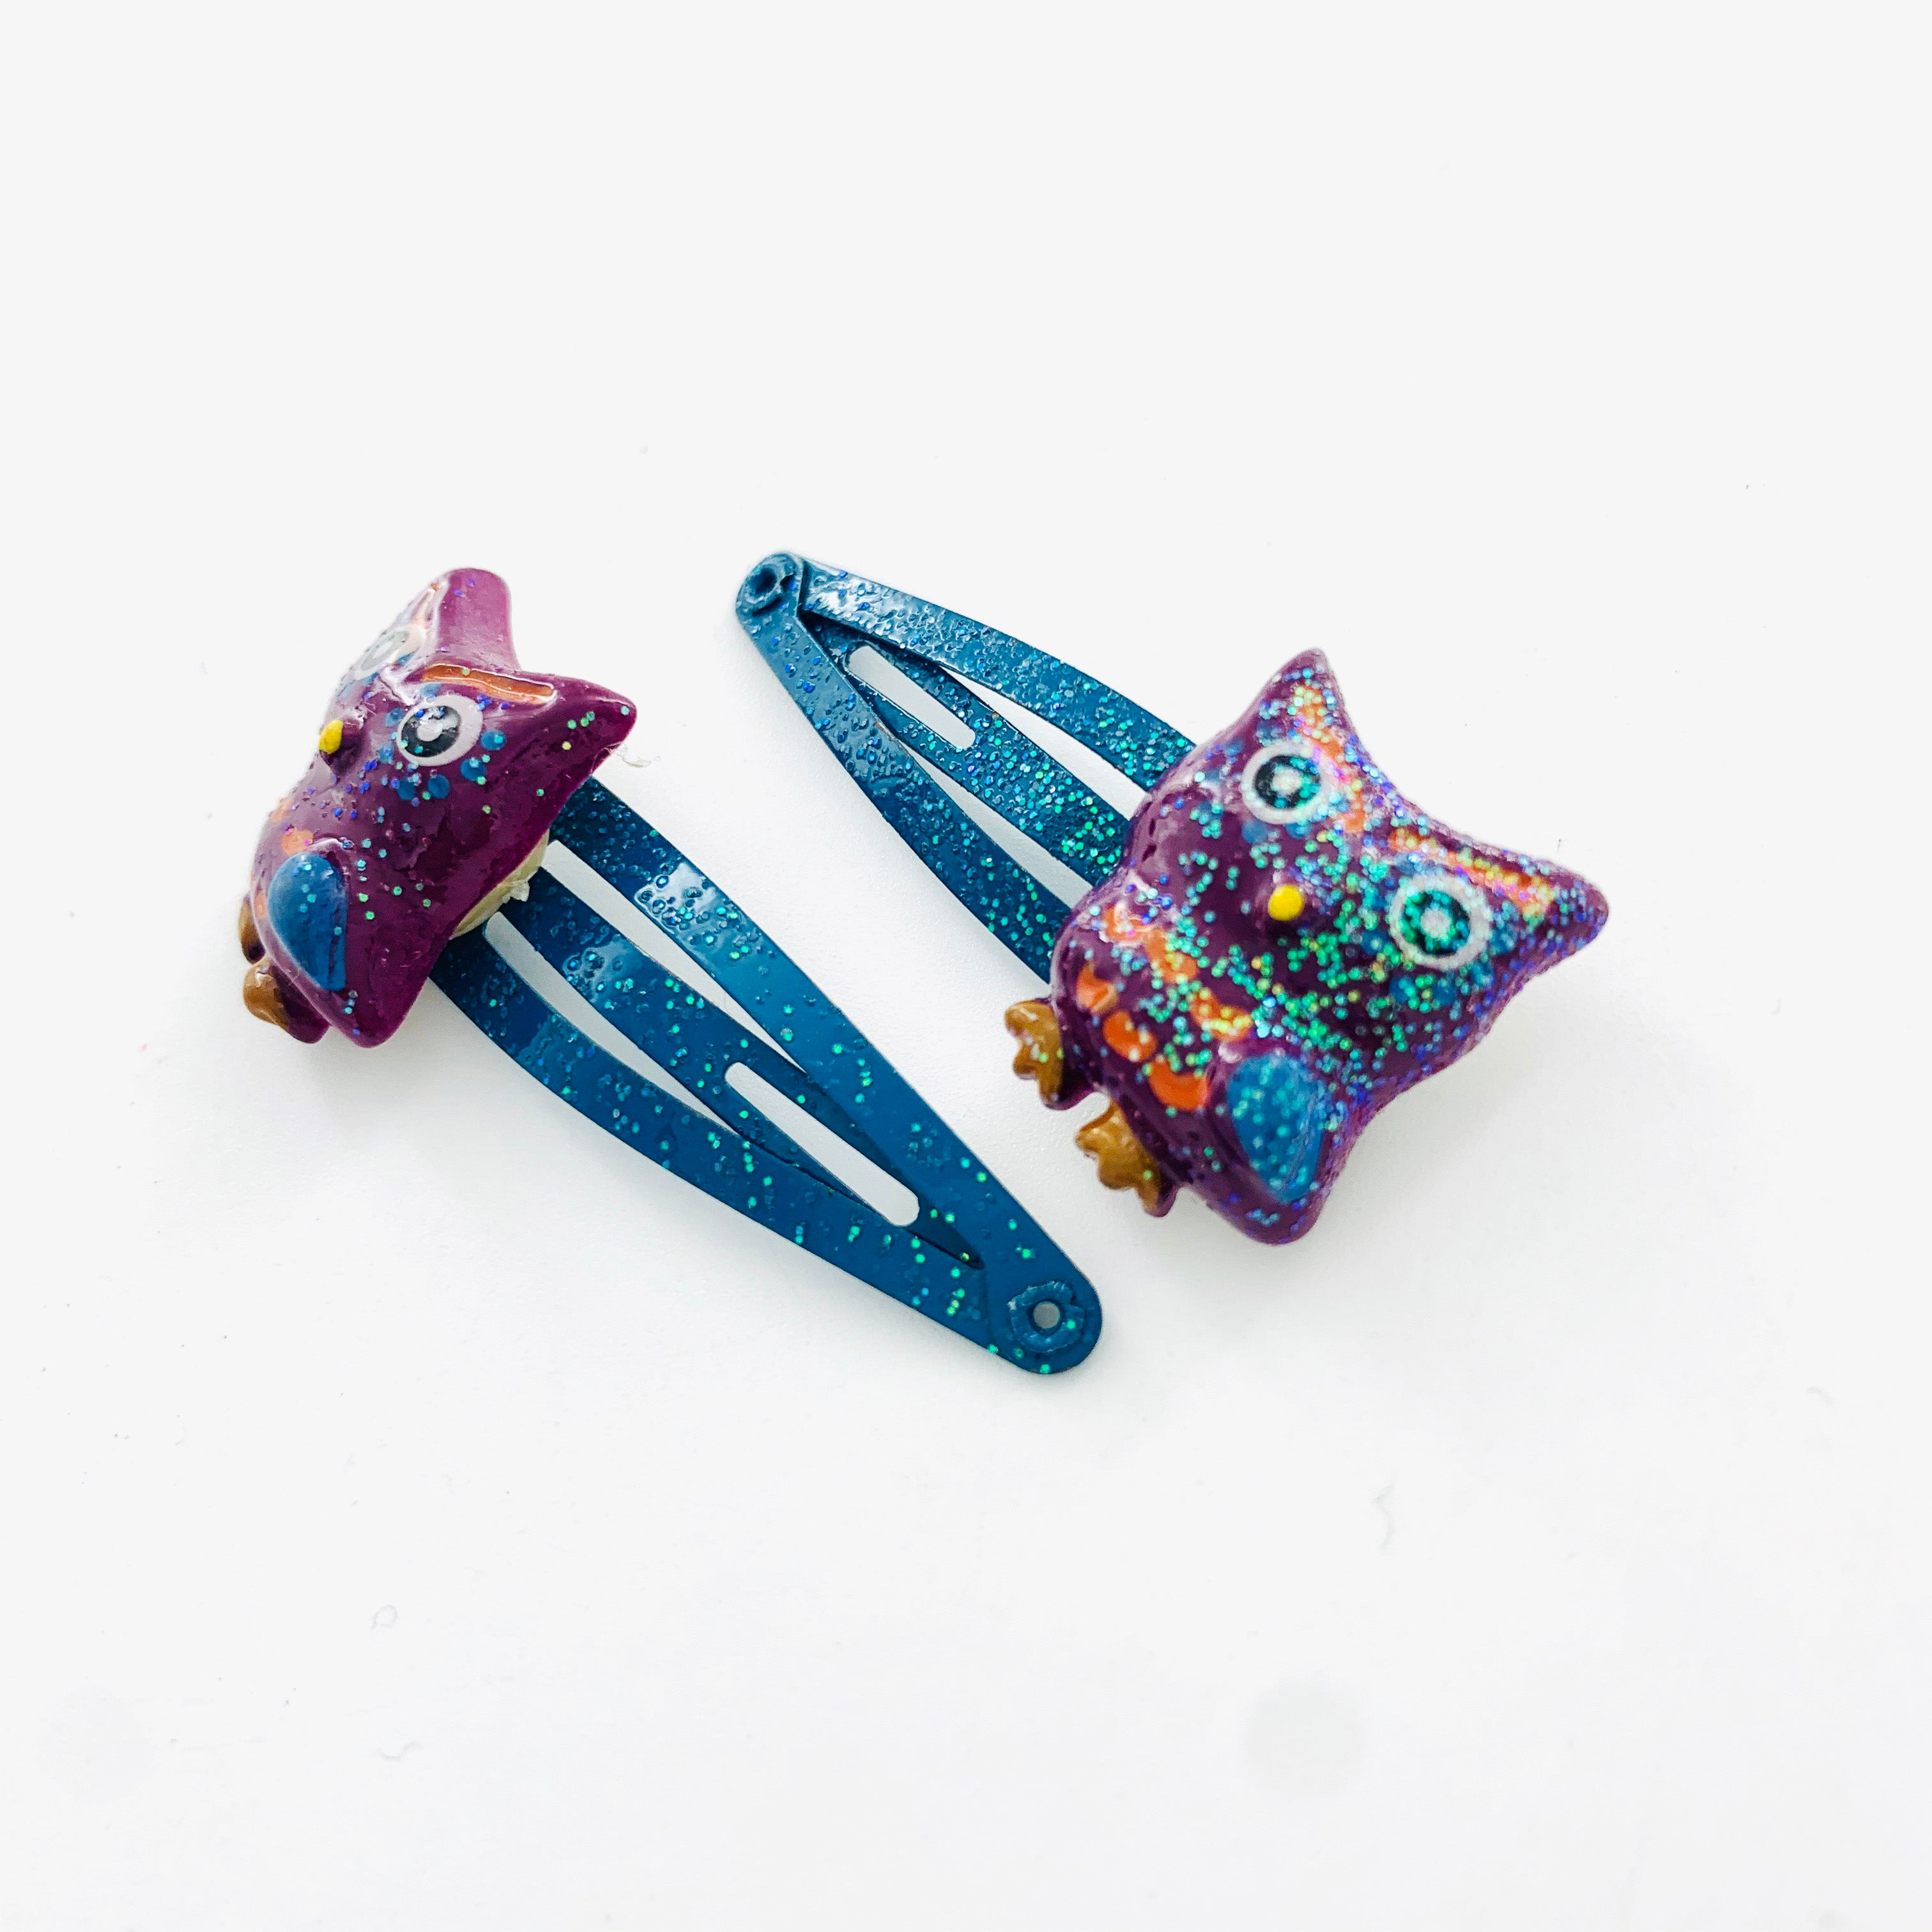 A pair of hair clips with owls and glitter finish